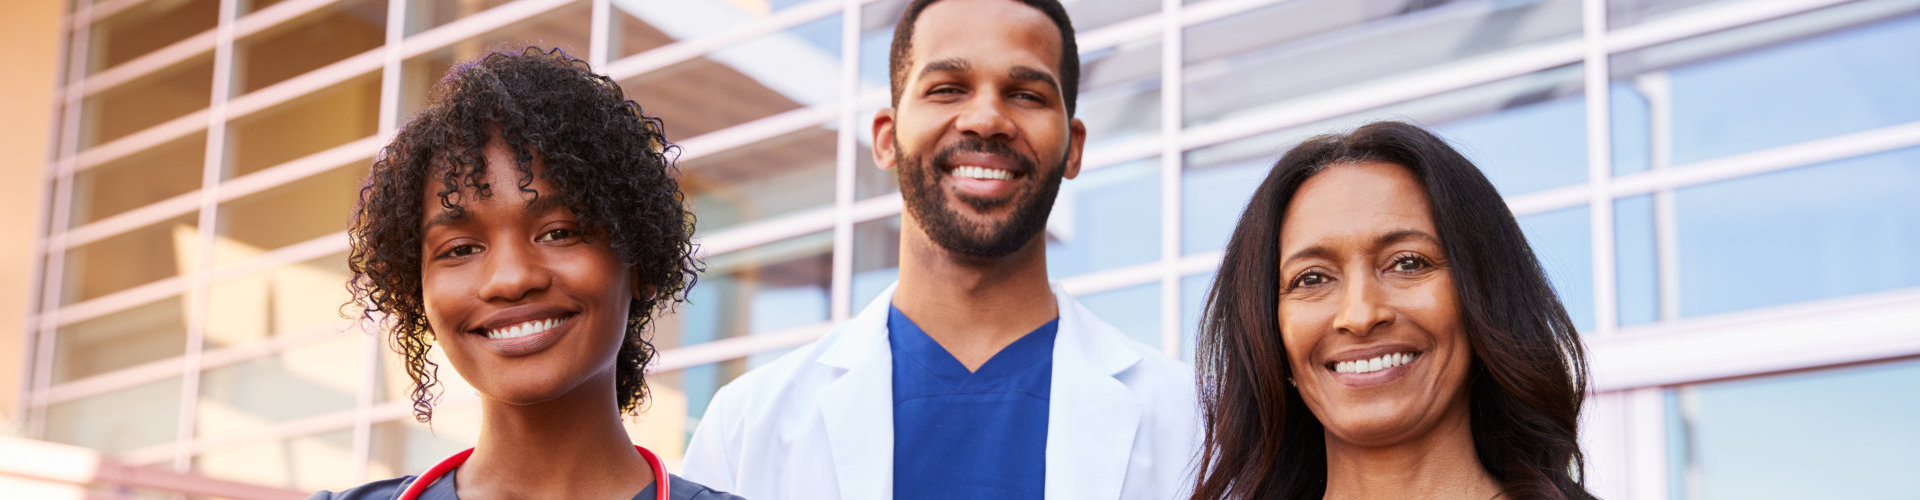 group of doctors smiling